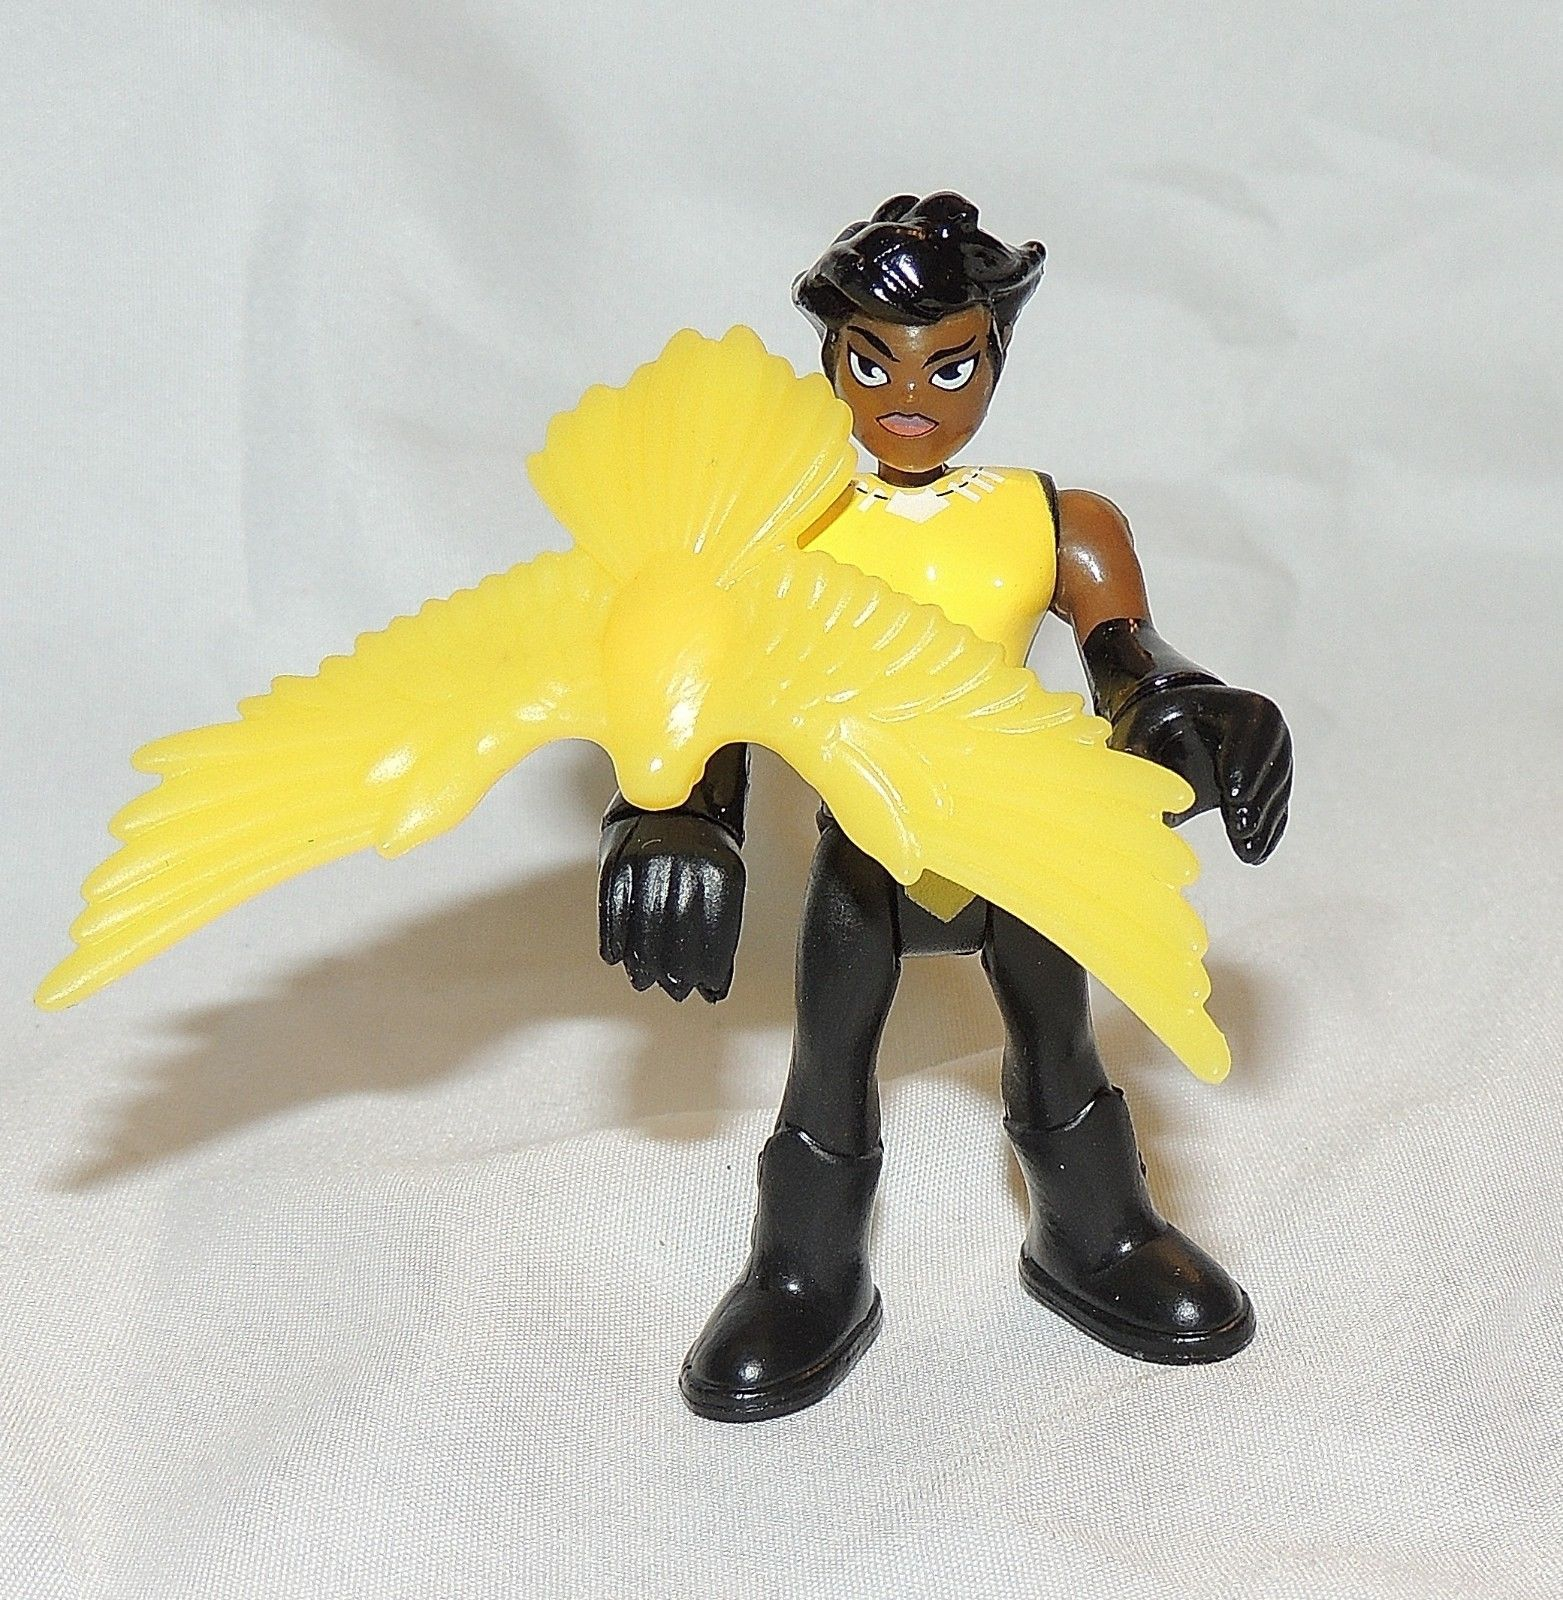 New Imaginext DC Super Friends Blind Bag Series 3 Vixen Bird Justice League